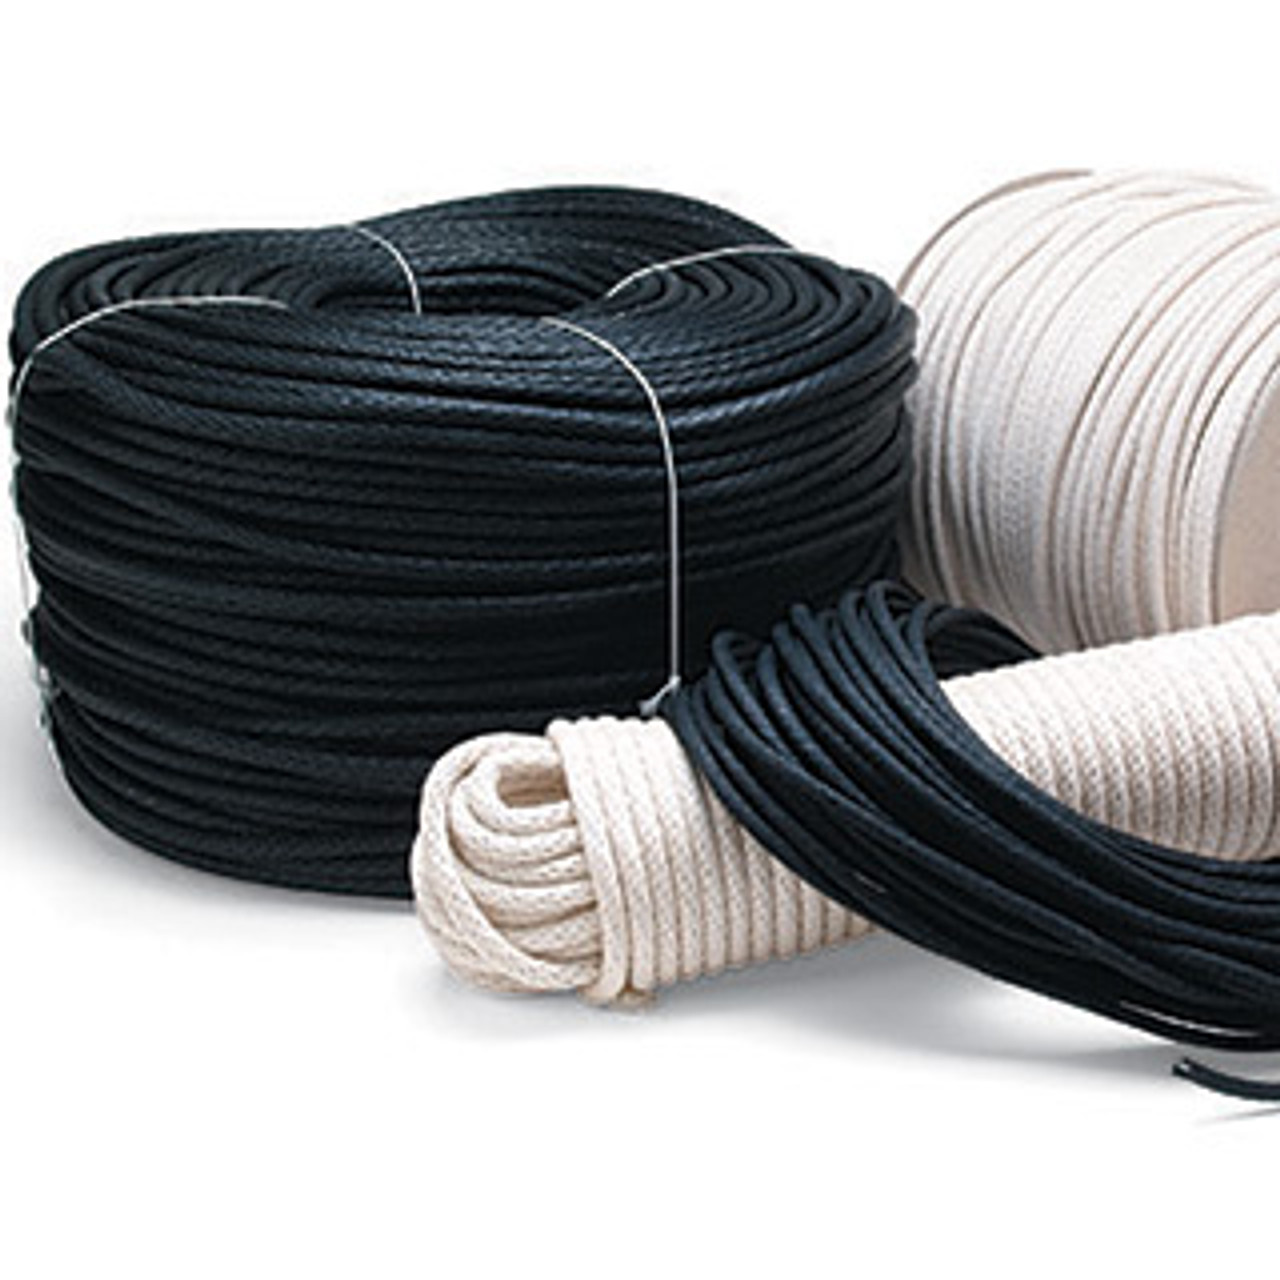 #10 Sash Cord - Black - 100 ft.